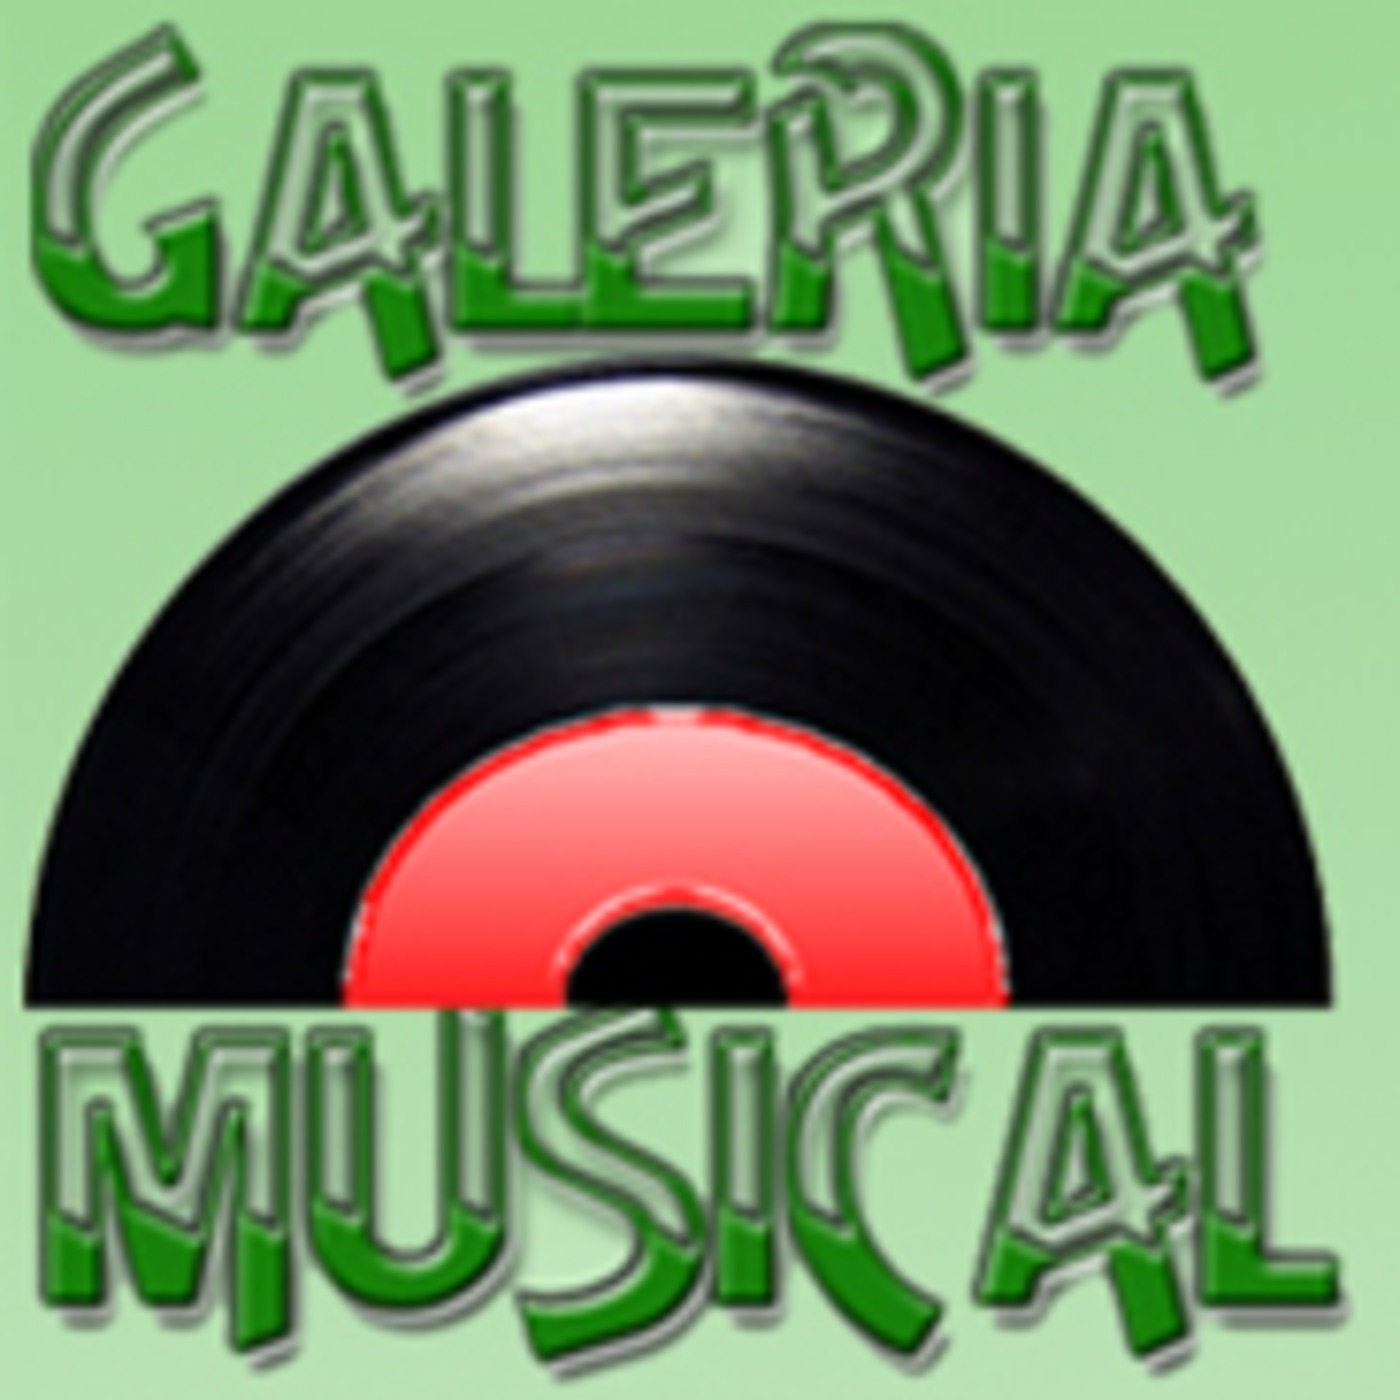 GaleriaCast o podcast do Galeria Musical